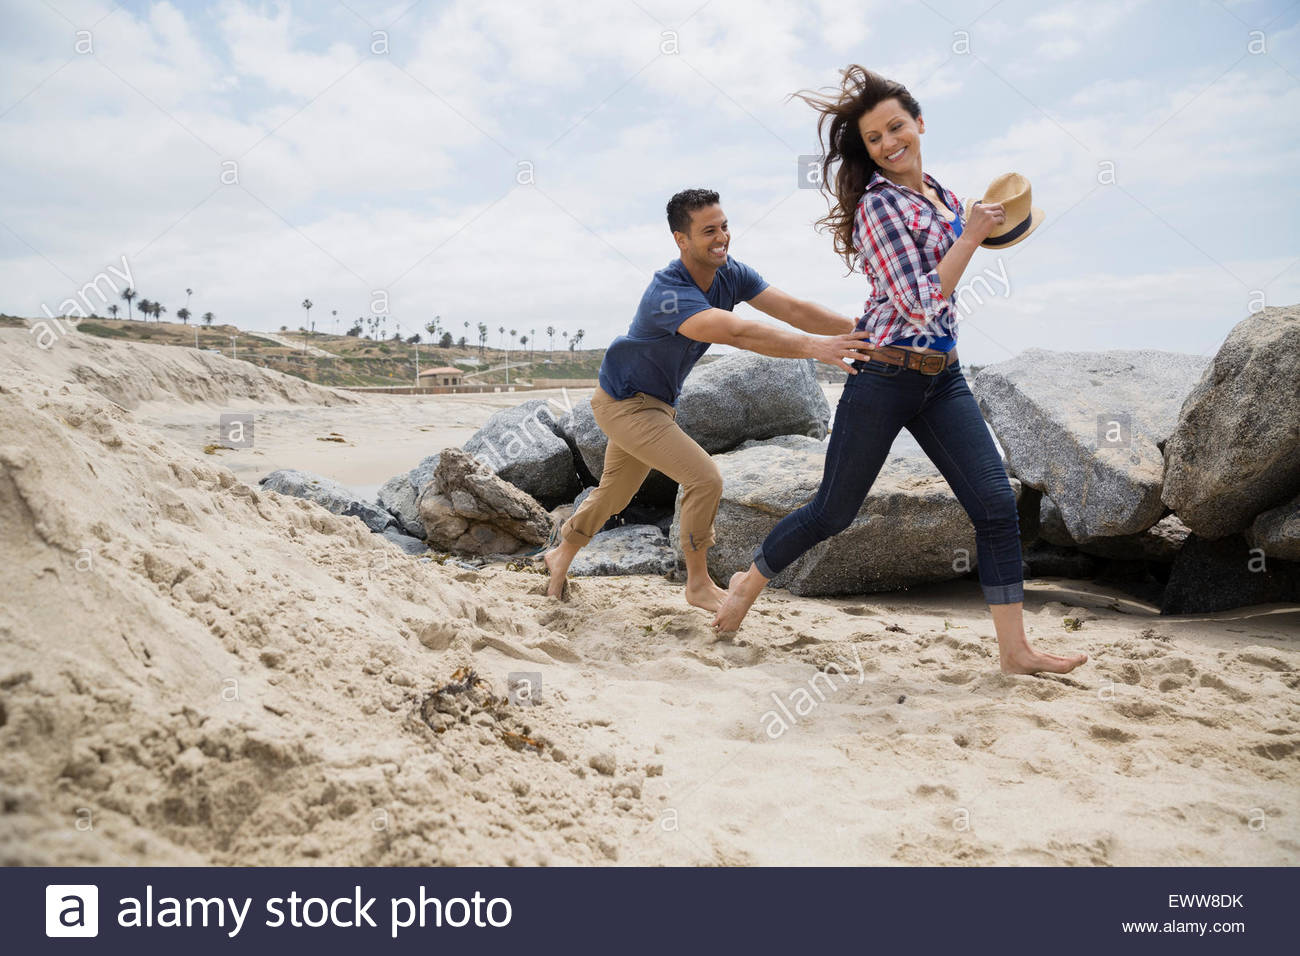 Playful couple running on beach - Stock Image